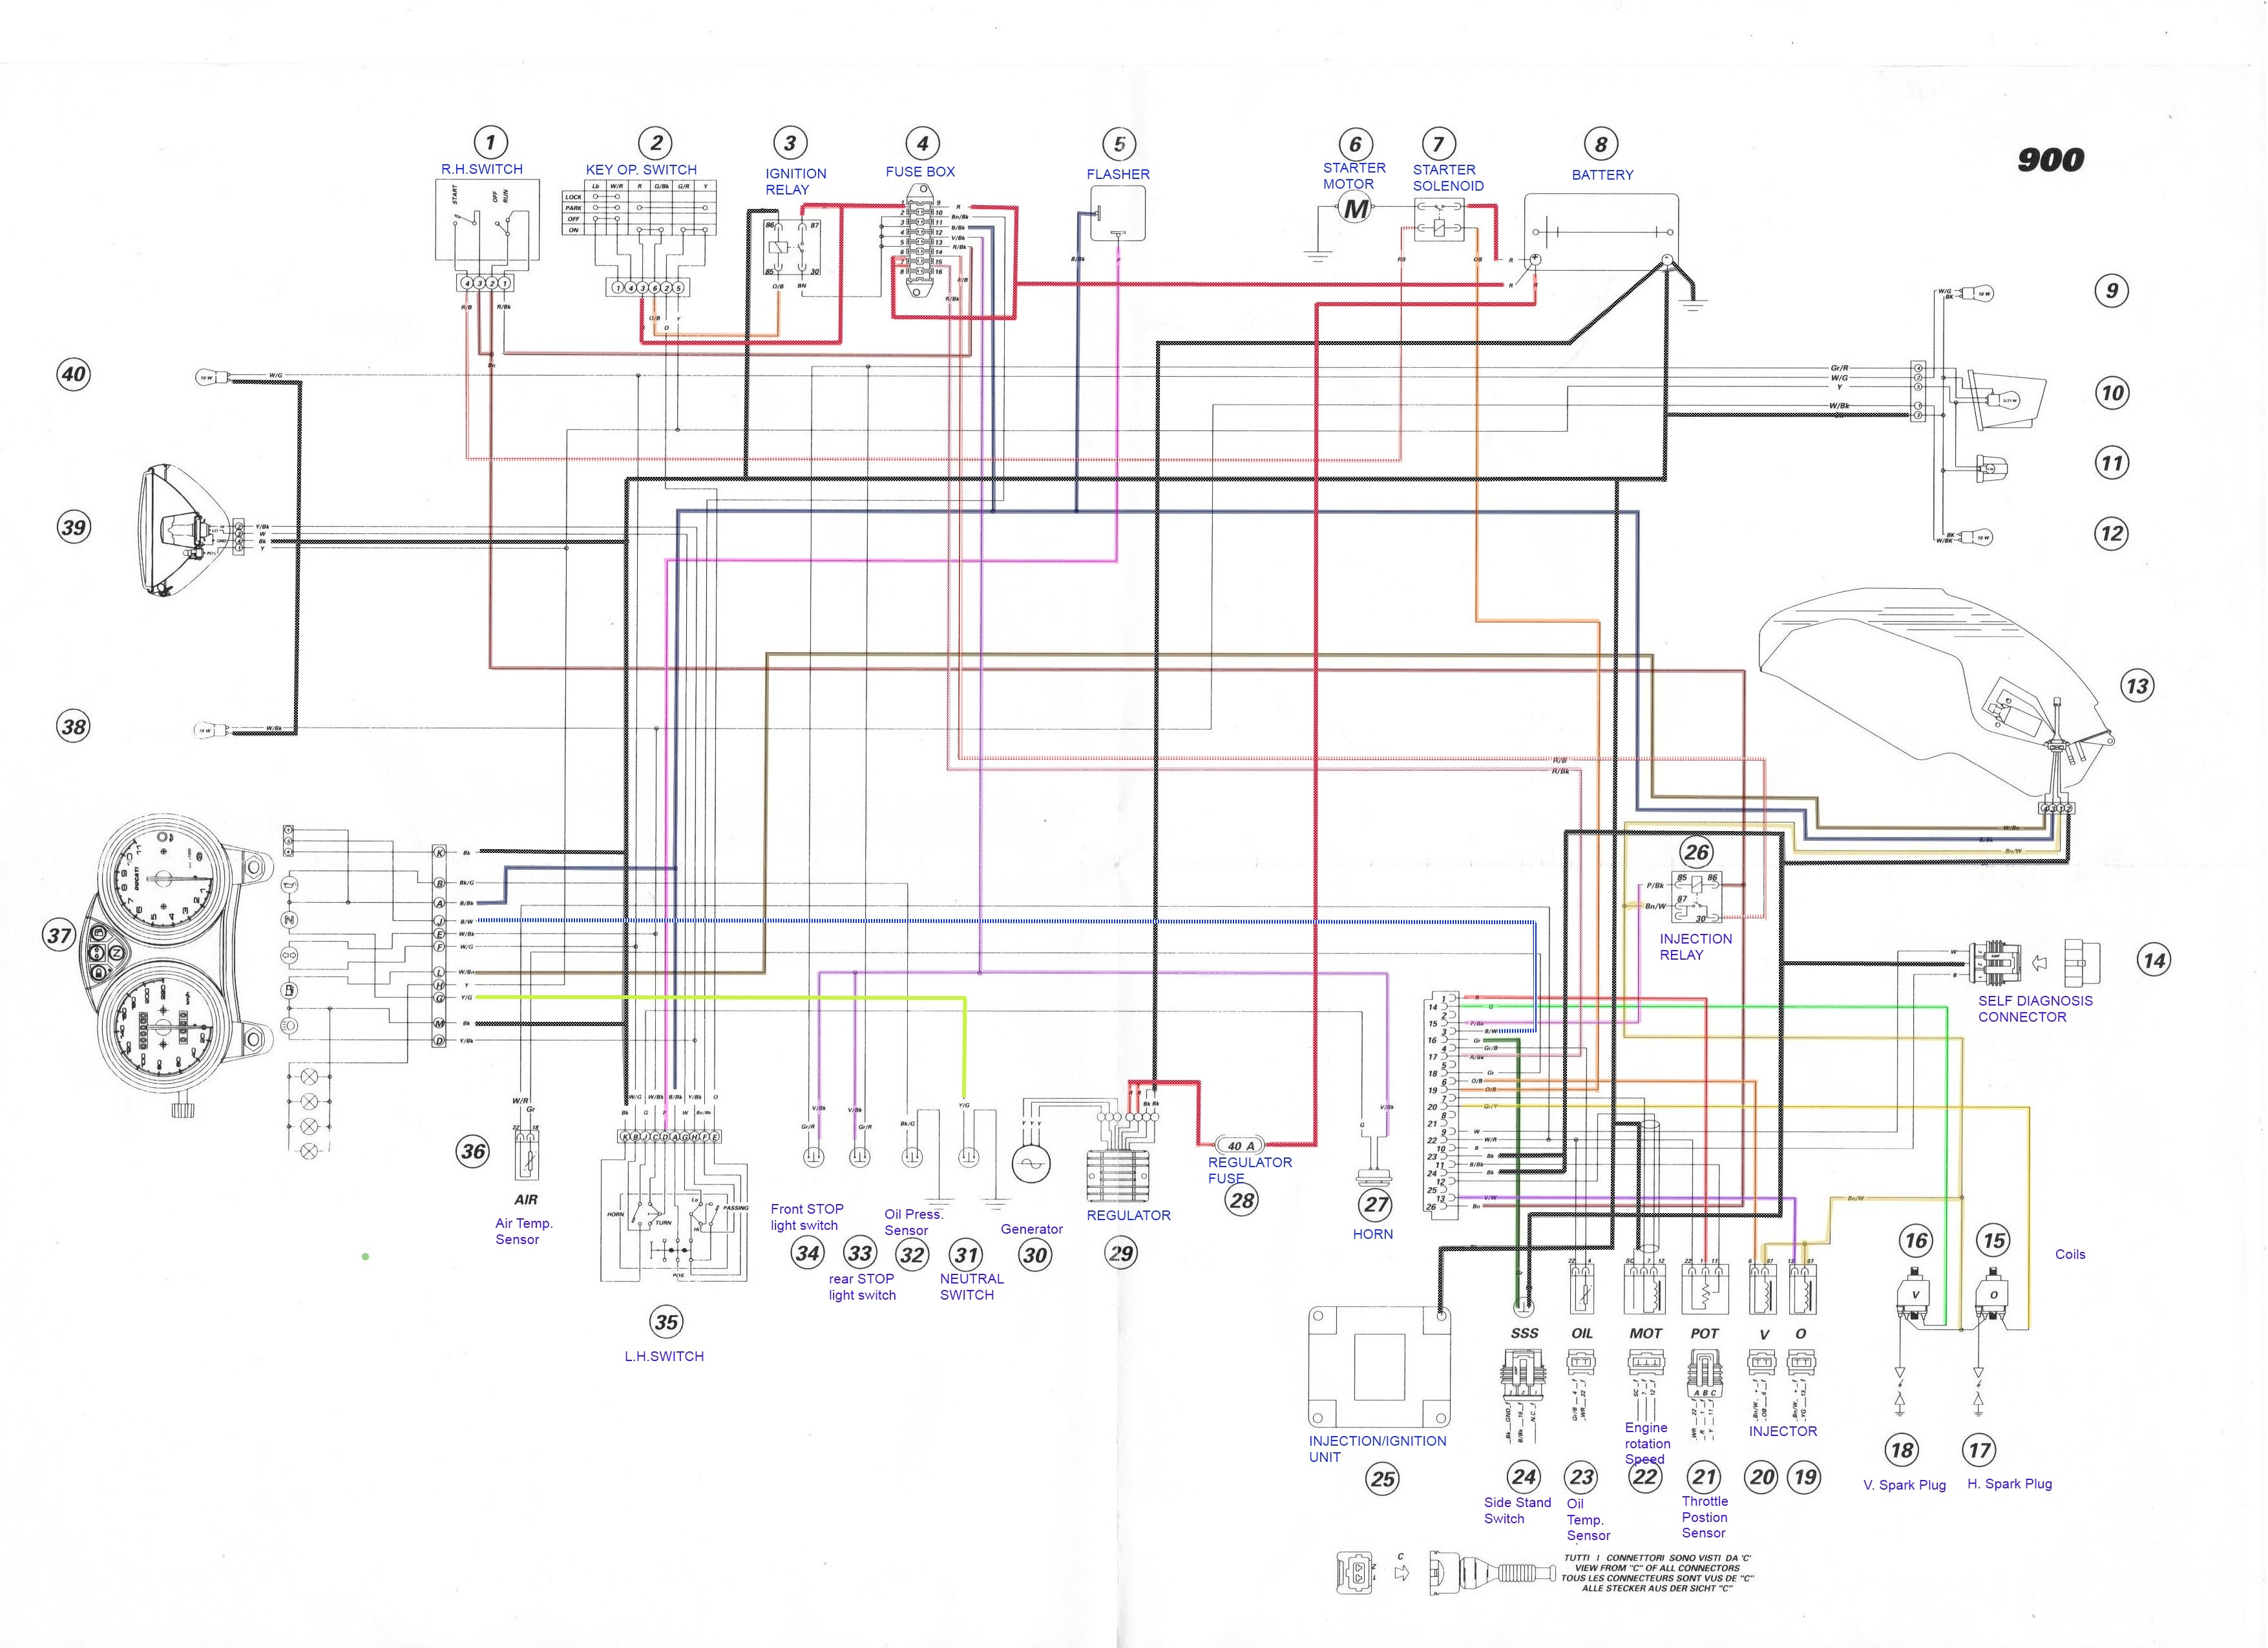 Rk 0145 Questions Answers For Need Wiring Diagram Pioneer Deh Cars Trucks Download Diagram